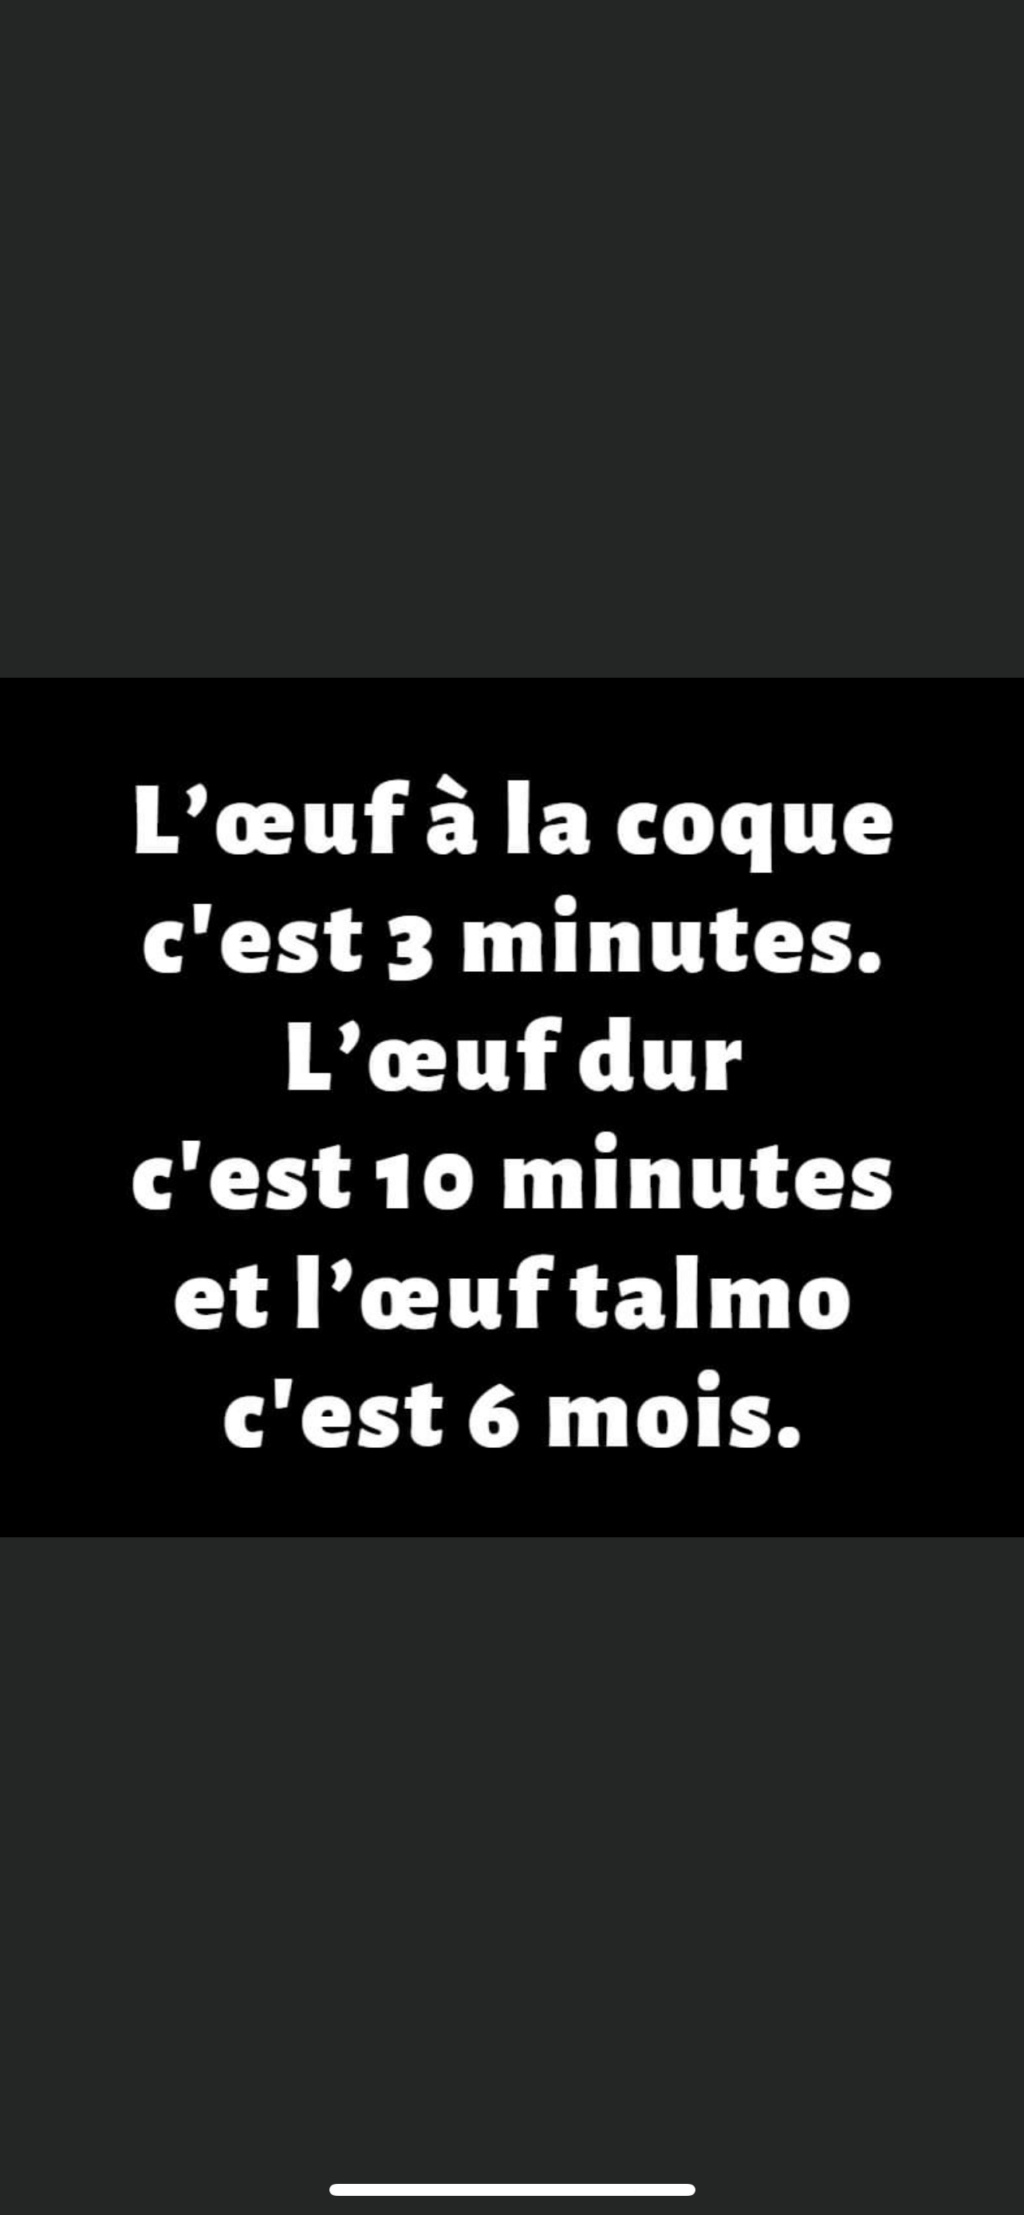 humour - Page 38 Caf70410